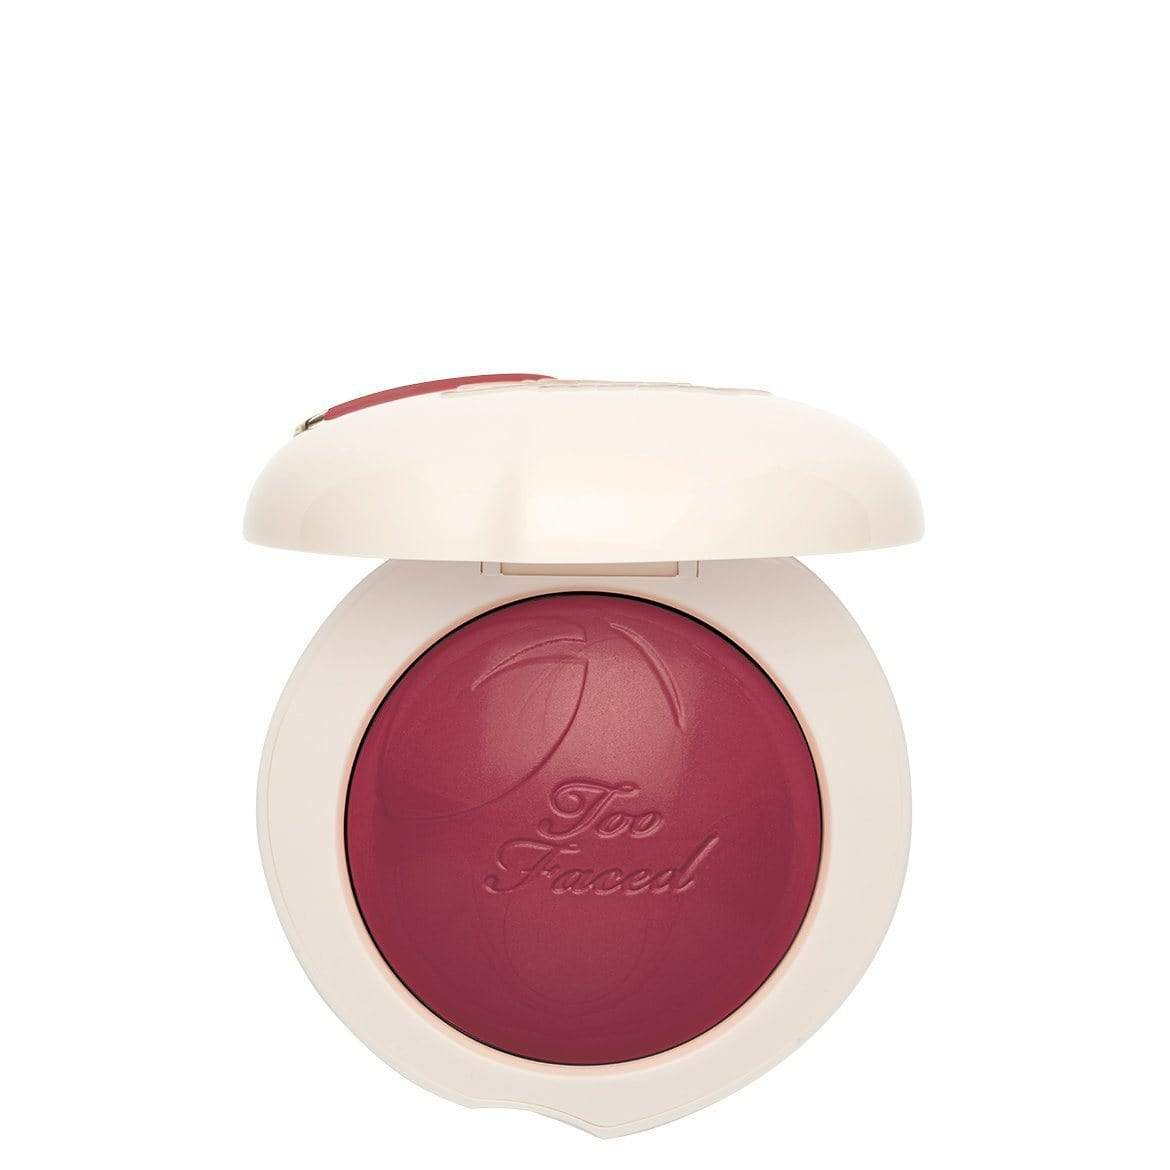 Too Faced Peach My Cheeks Melting Powder Blush – Peaches and Cream Collection: Peach Berry, Blush, London Loves Beauty